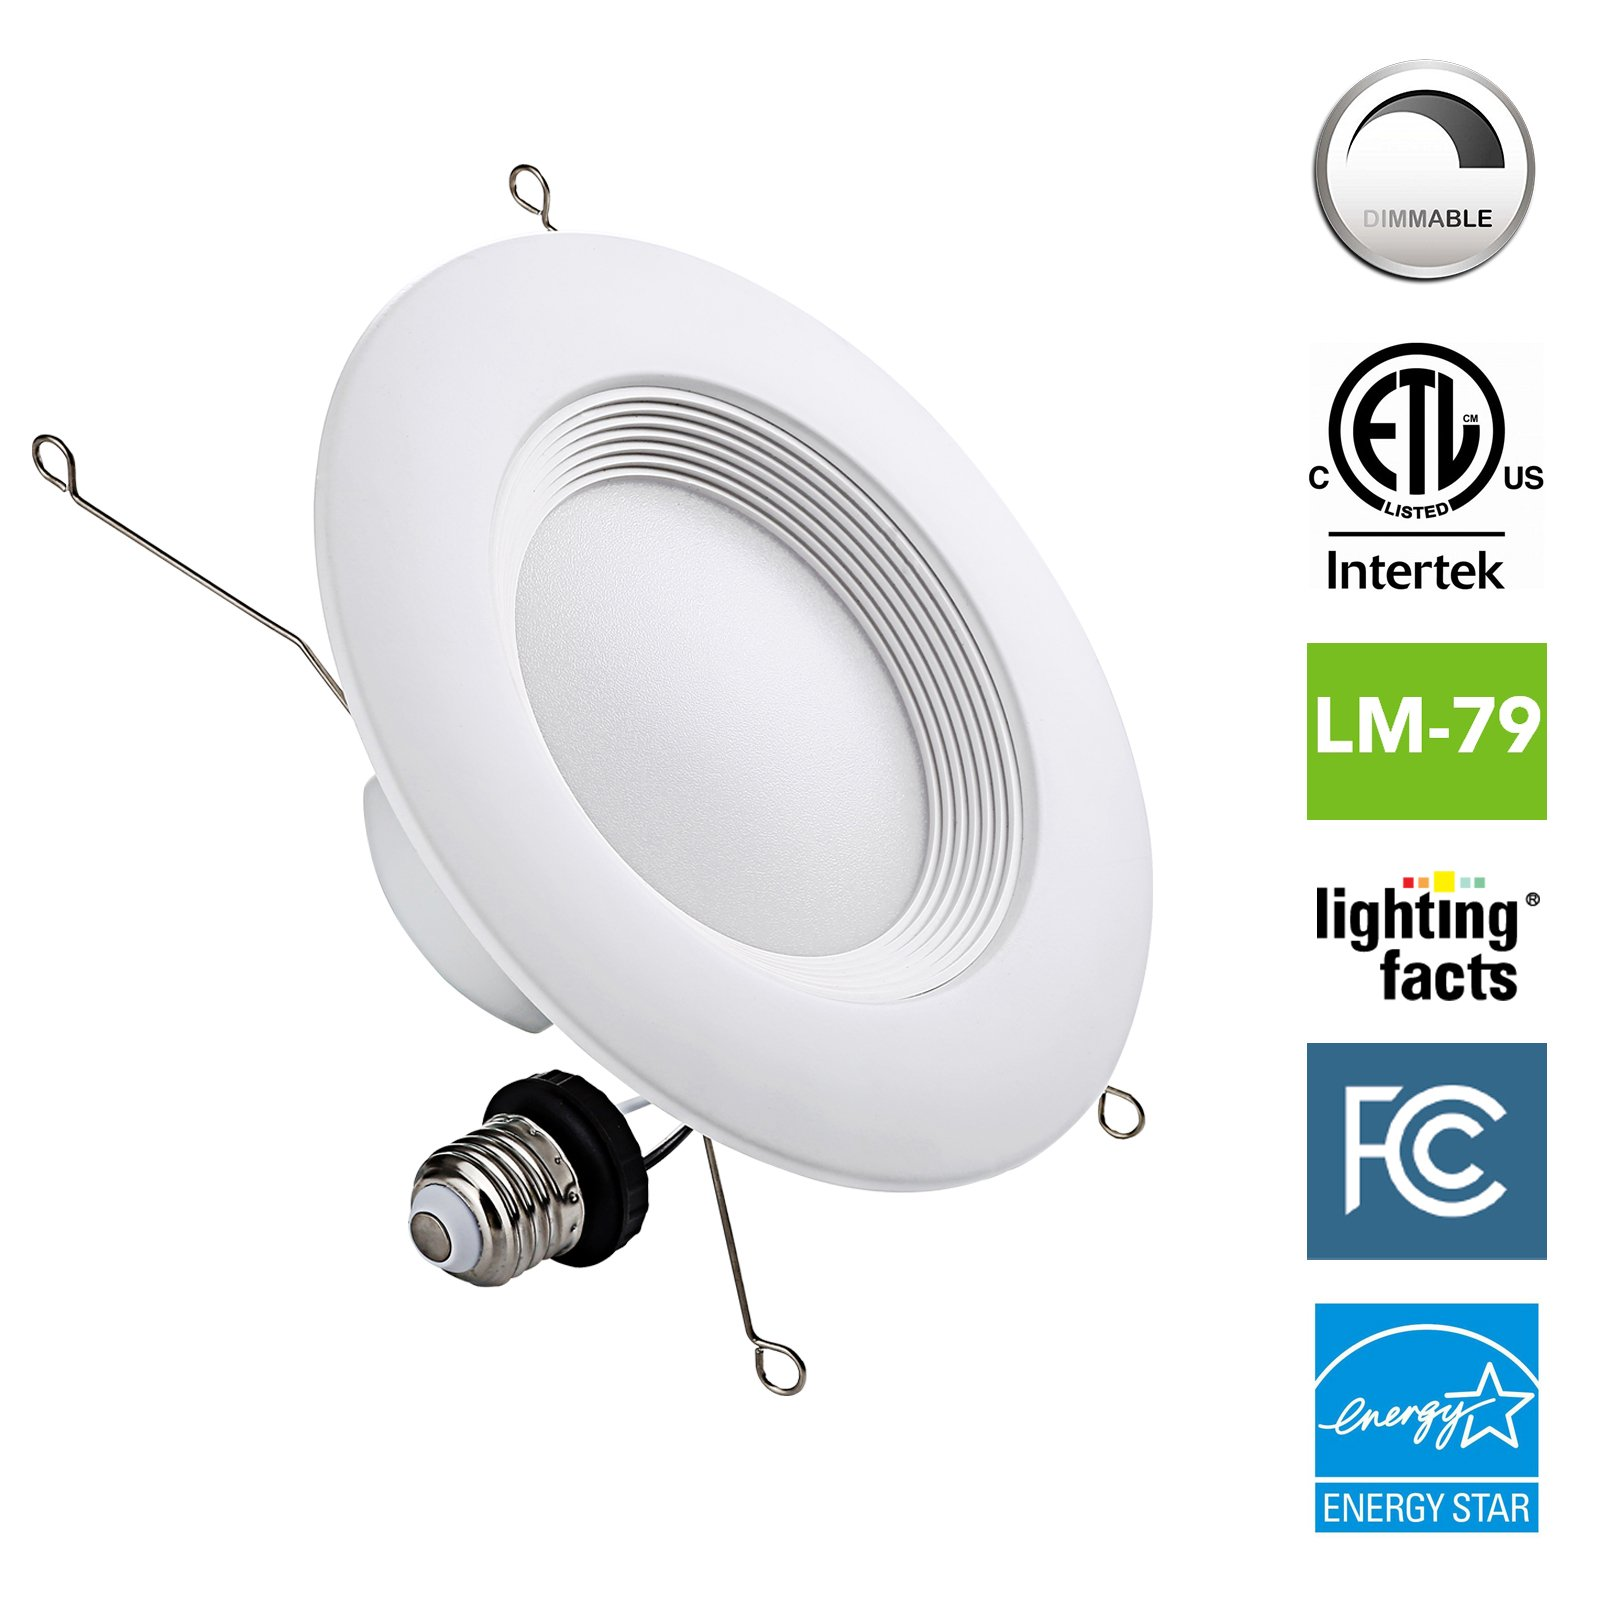 NASUN 5/6 Inch Dimmable LED Downlight, ENERGY STAR, ETL, FCC, 12W, CRI90+, Recessed Retrofit Downlight Lighting Fixture - (Pack of 1), 5 Year Warranty